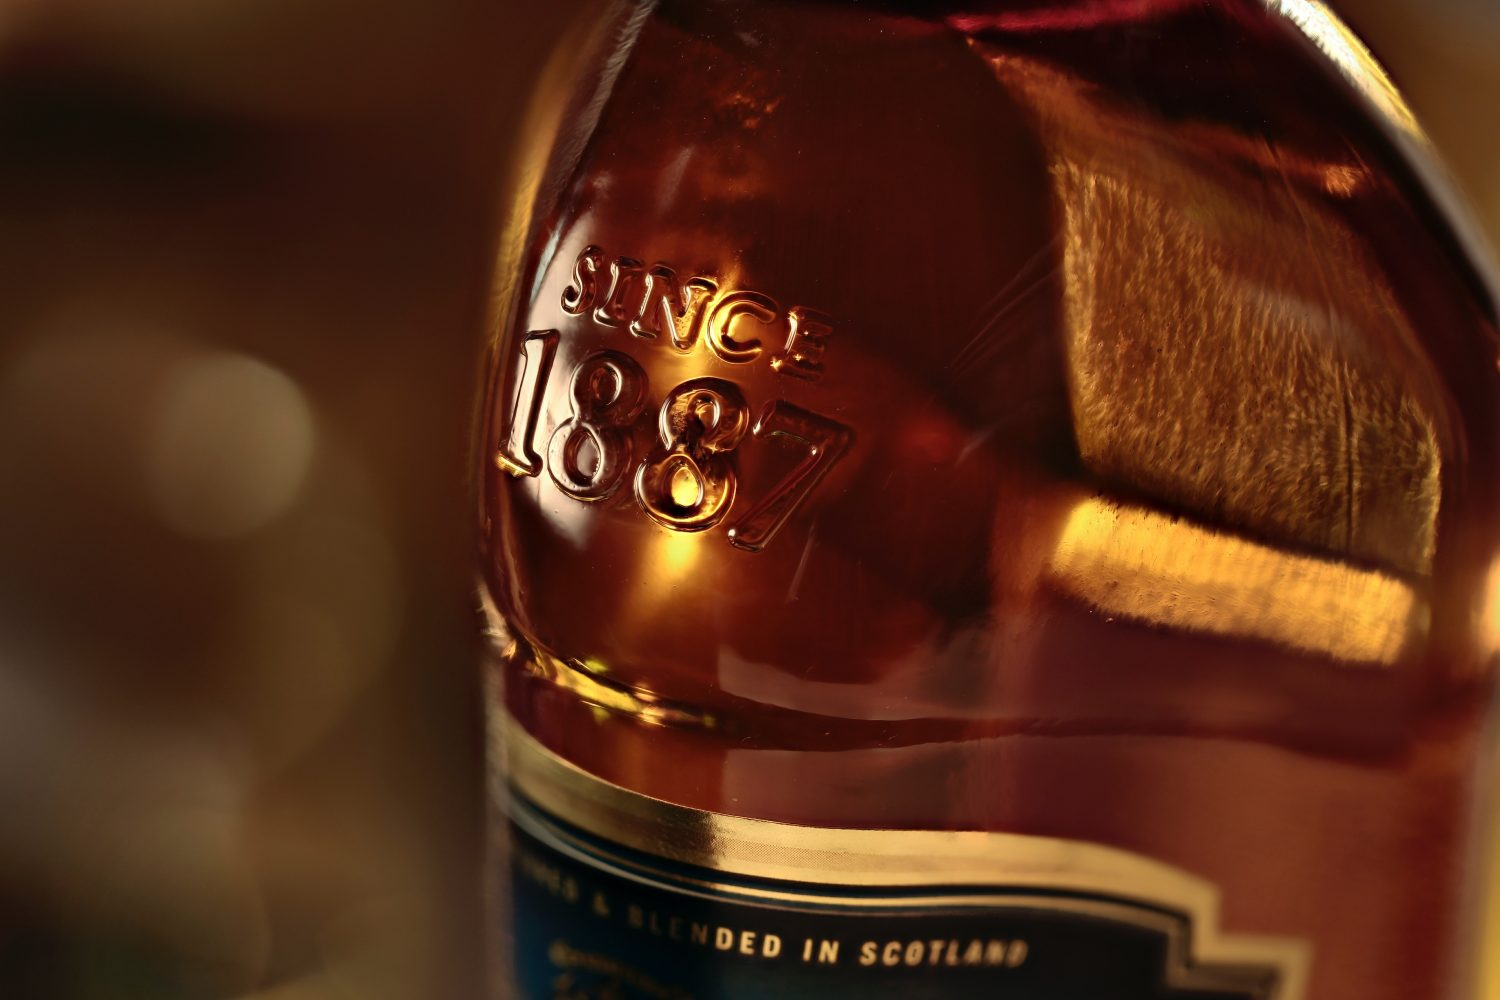 whiskey of whisky schrijfwijze